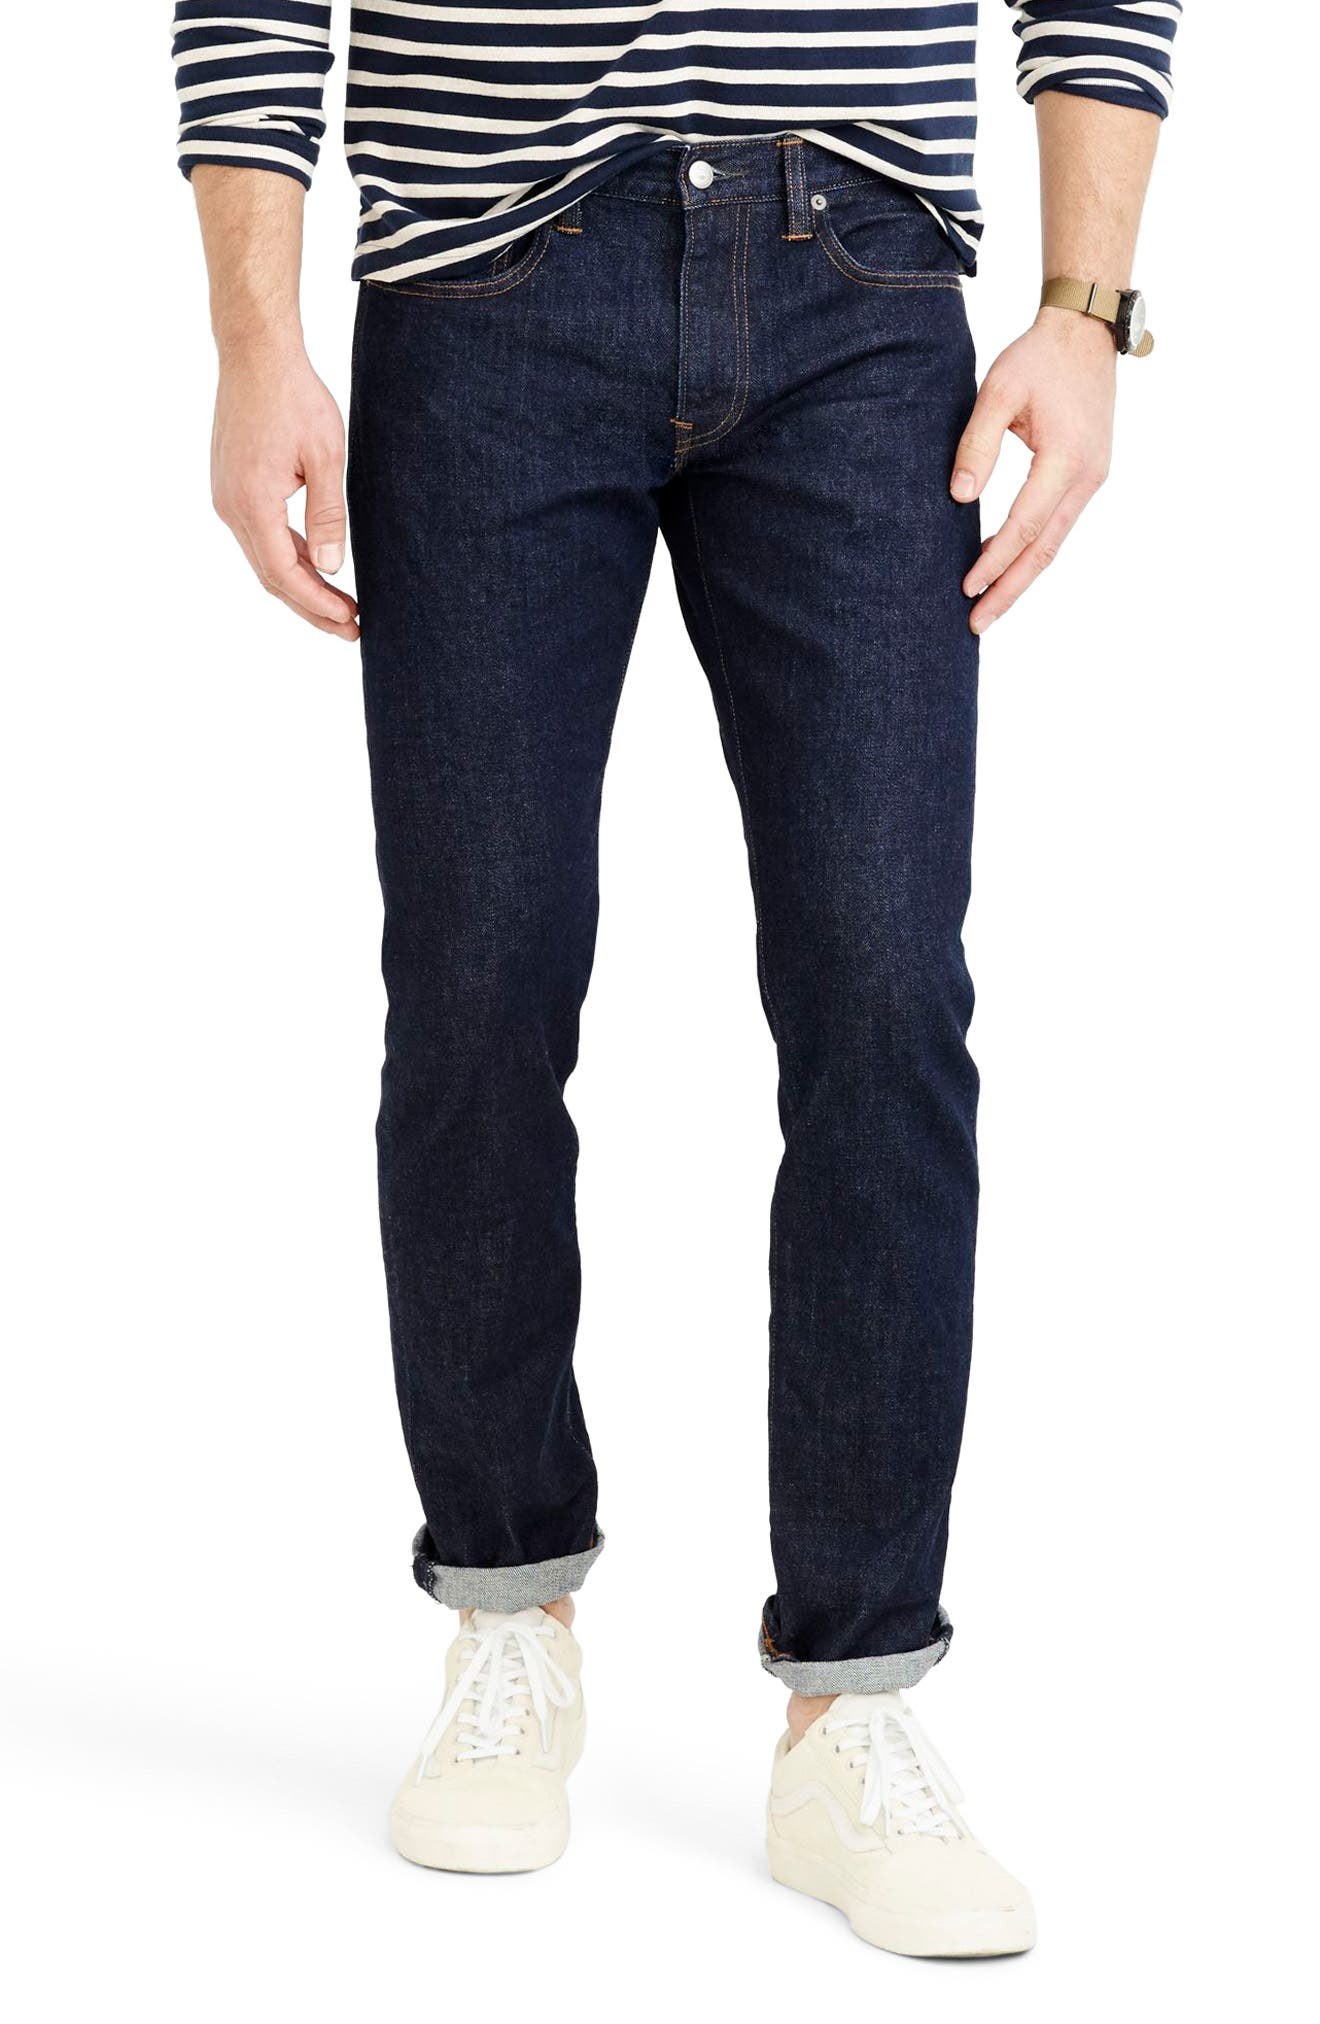 484 Slim Fit Stretch Jeans,                         Main,                         color,